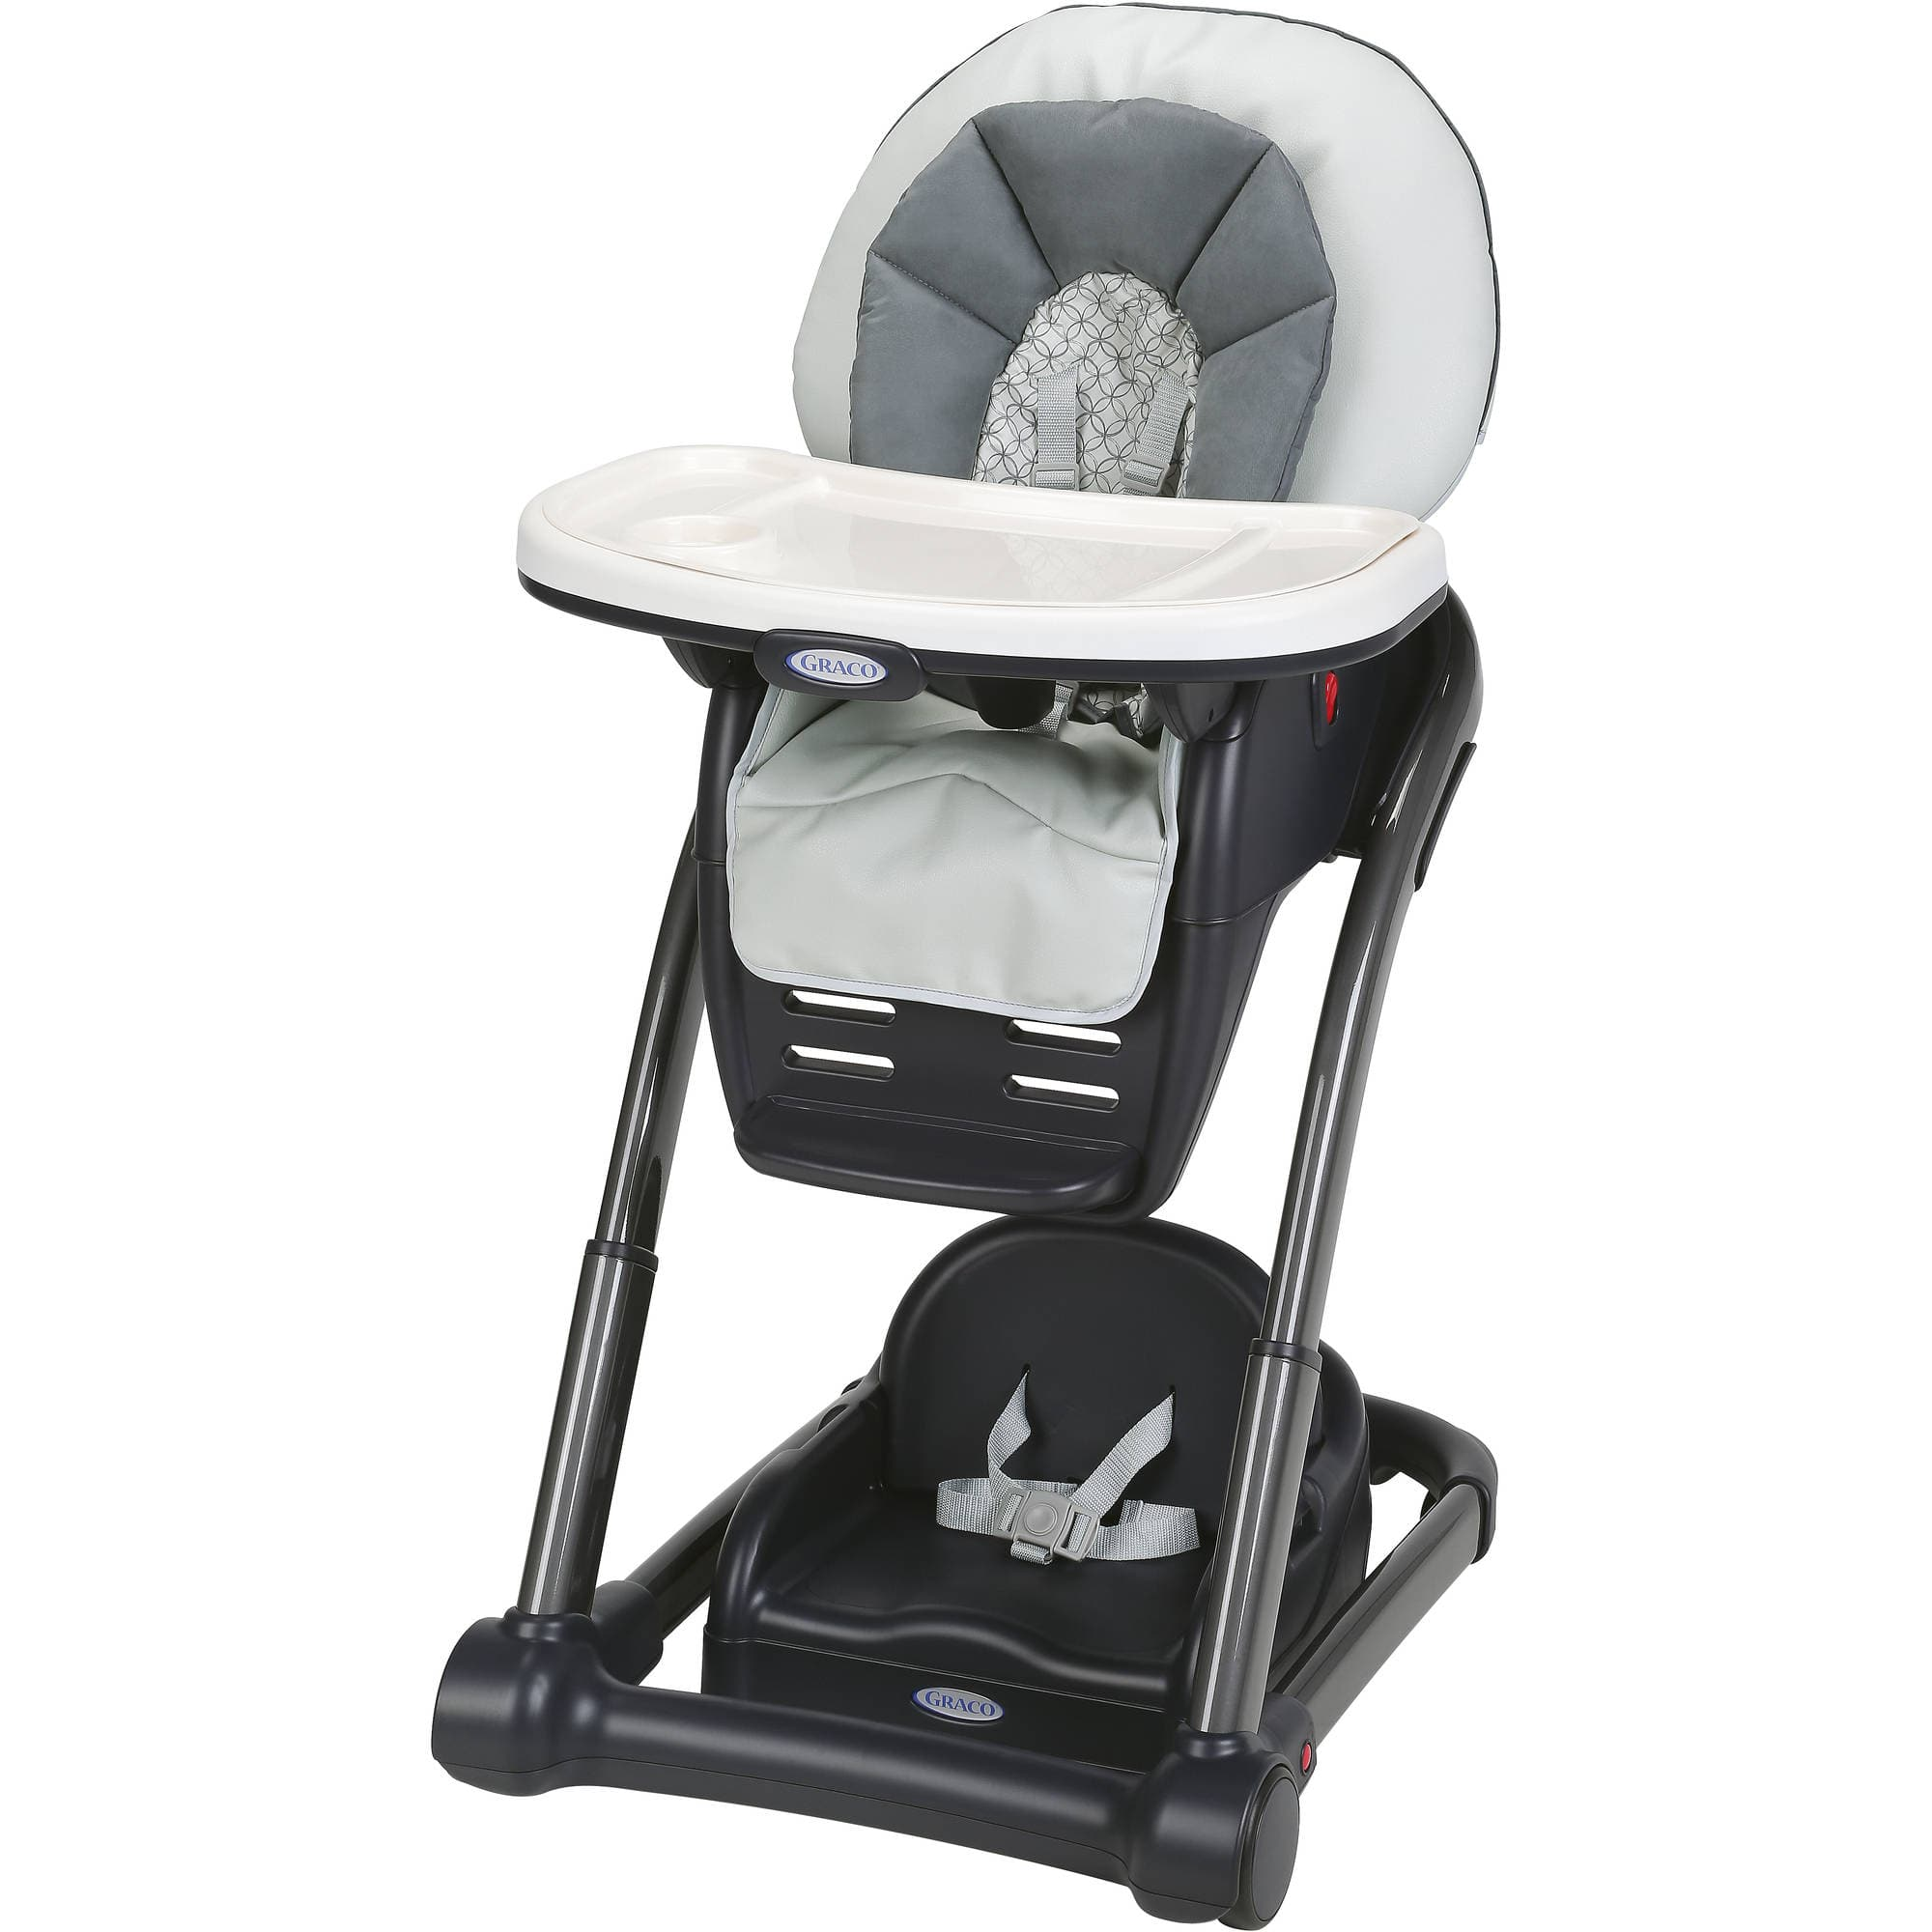 Graco Blossom 4-in-1 Convertible High Chair, McKinley $101.50 after store pick up discount @ Walmart